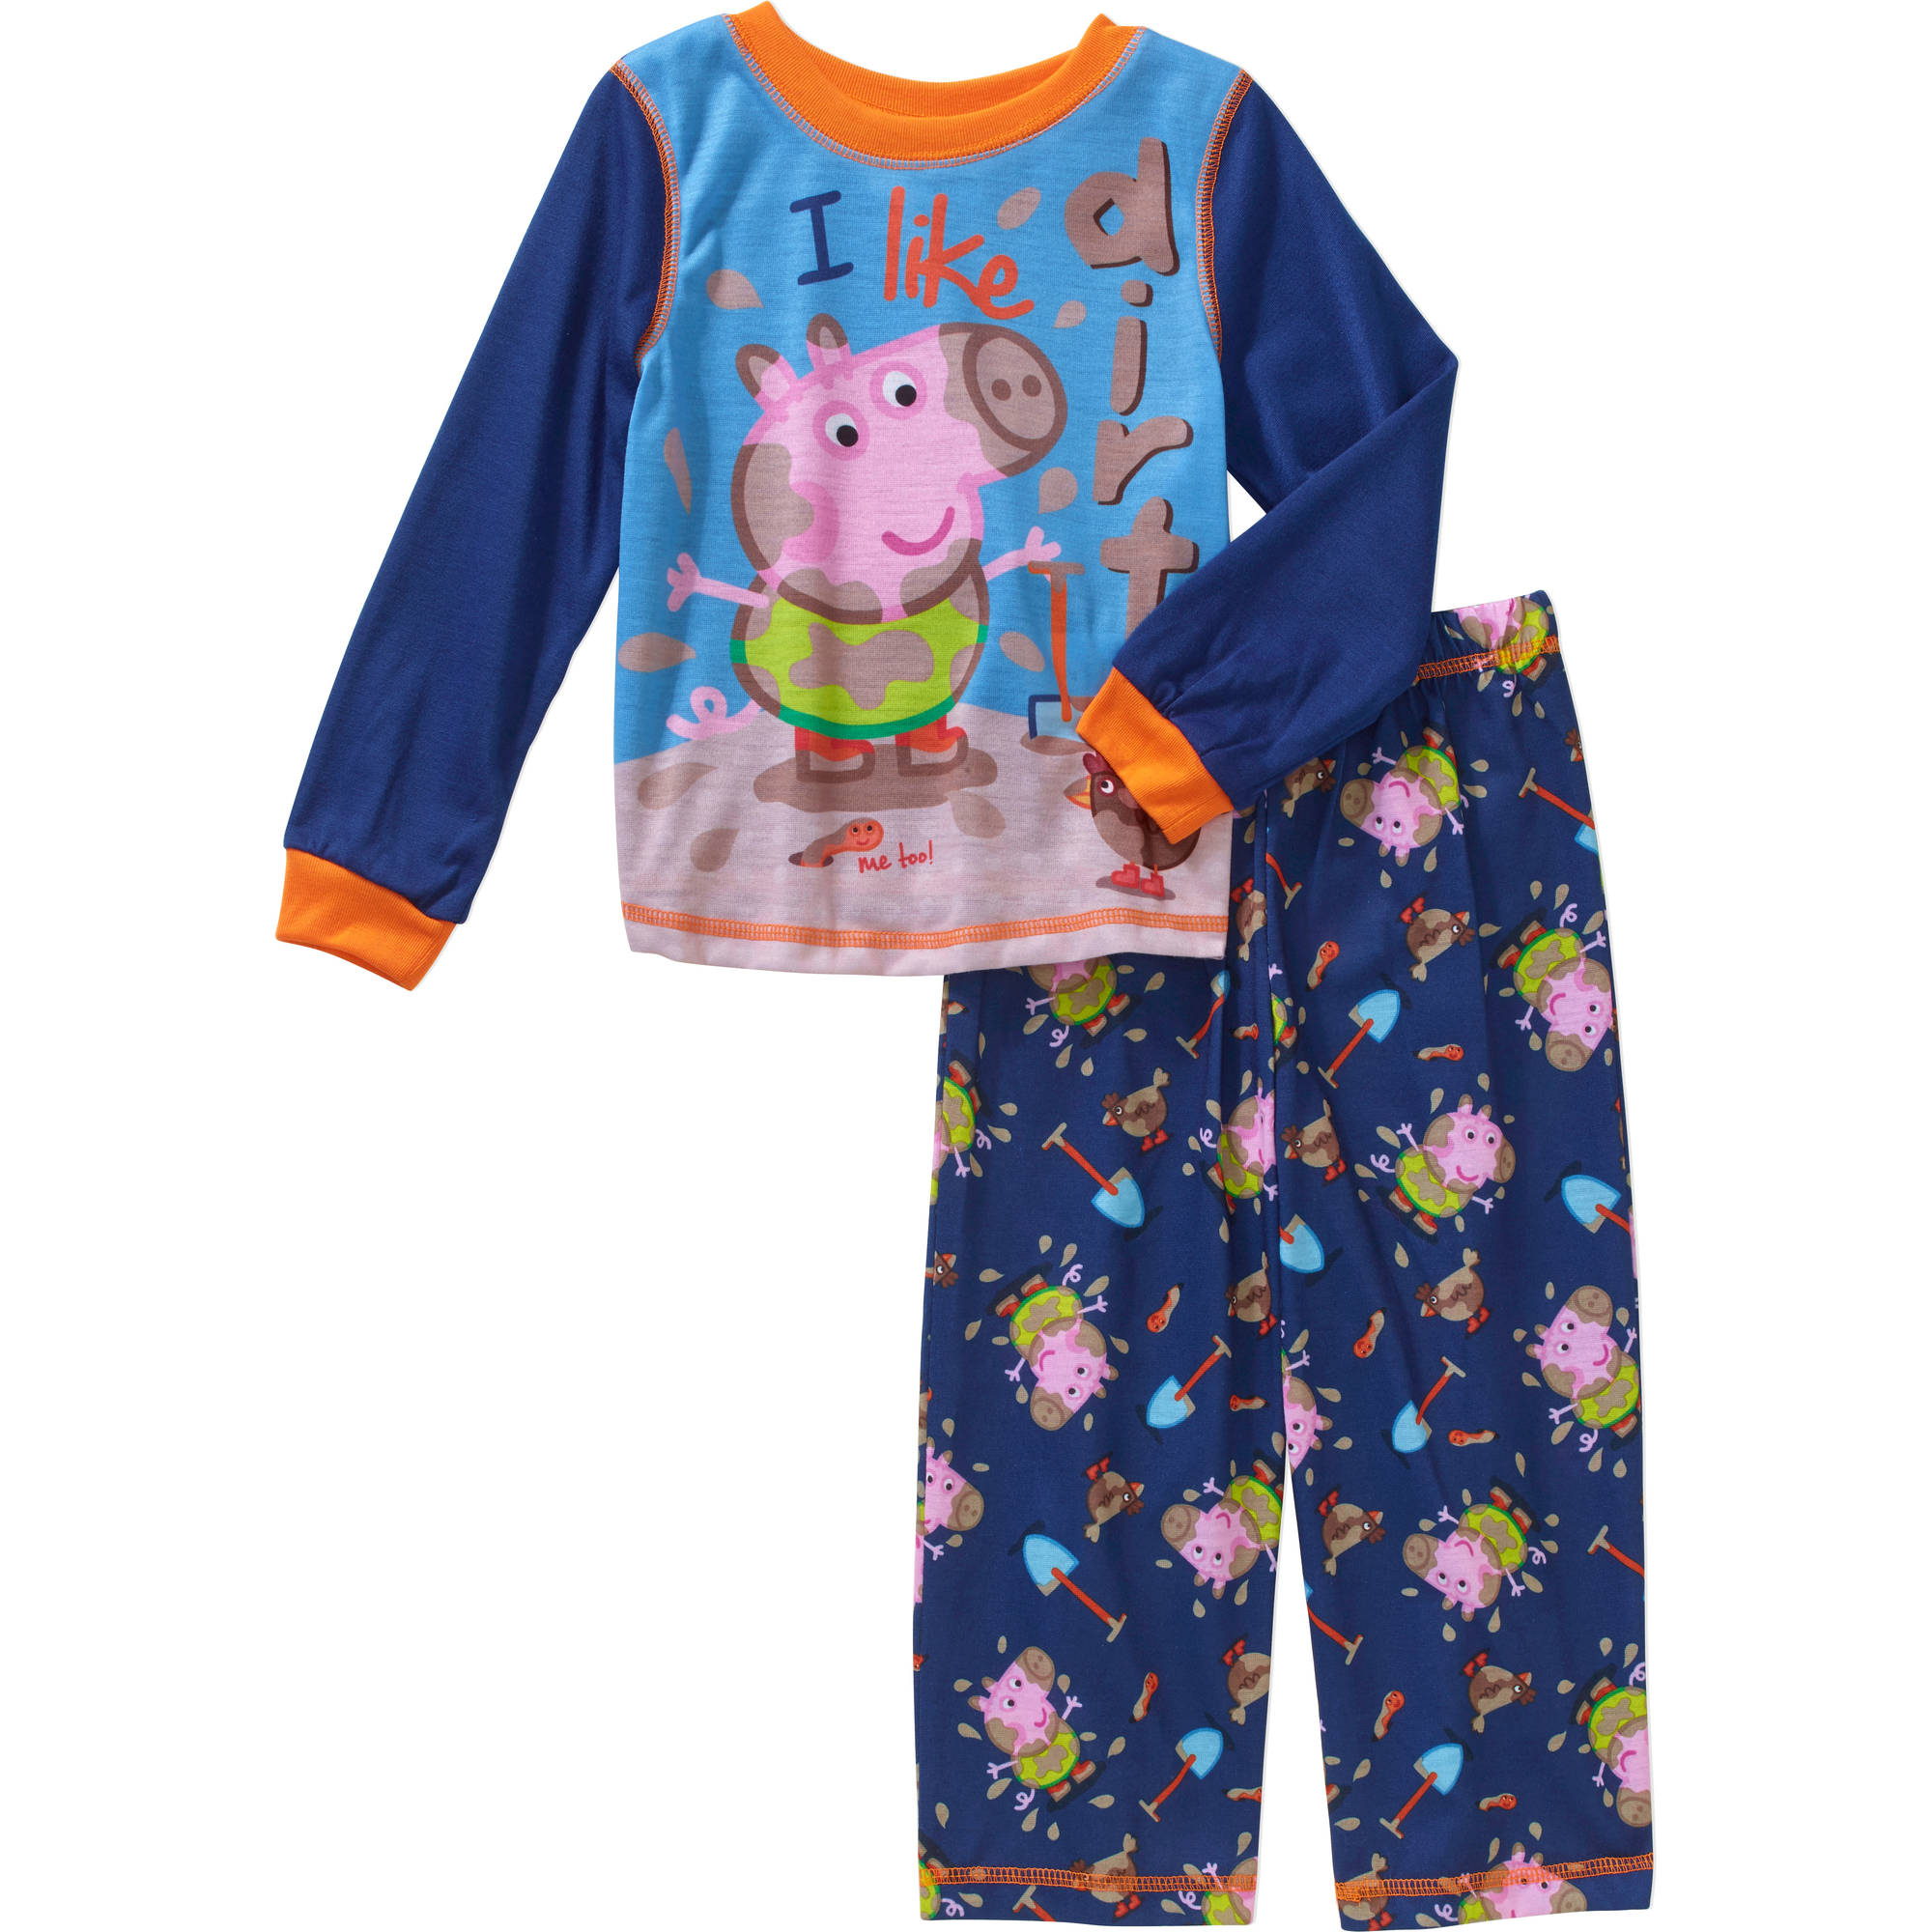 Peppa Pig Toddler Boys' George Pajamas 2-Piece Set